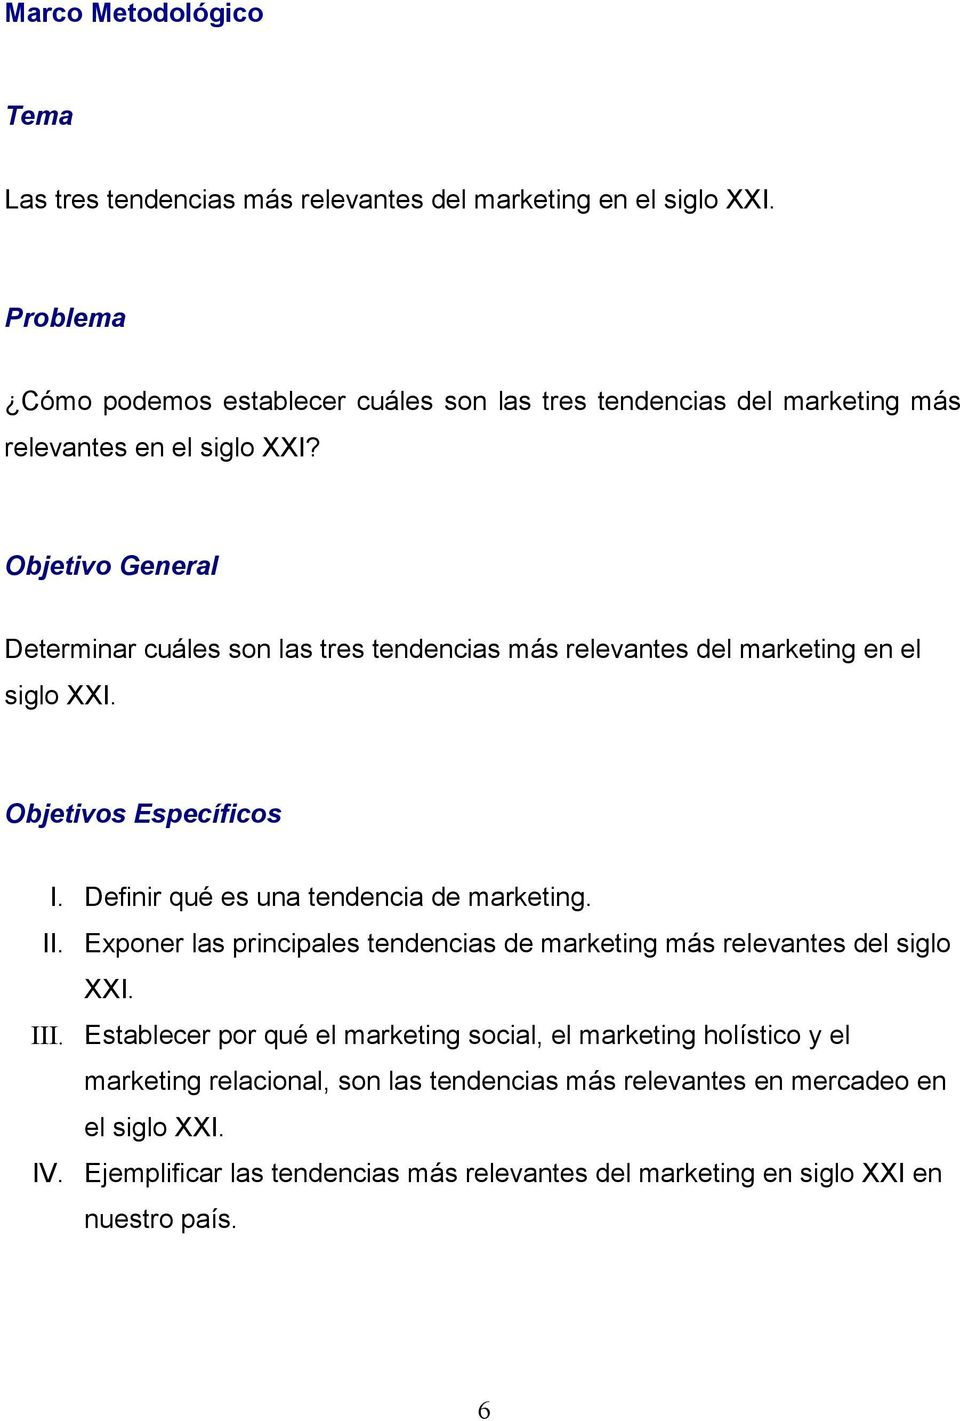 Objetivo General Determinar cuáles son las tres tendencias más relevantes del marketing en el siglo XXI. Objetivos Específicos I. Definir qué es una tendencia de marketing. II.